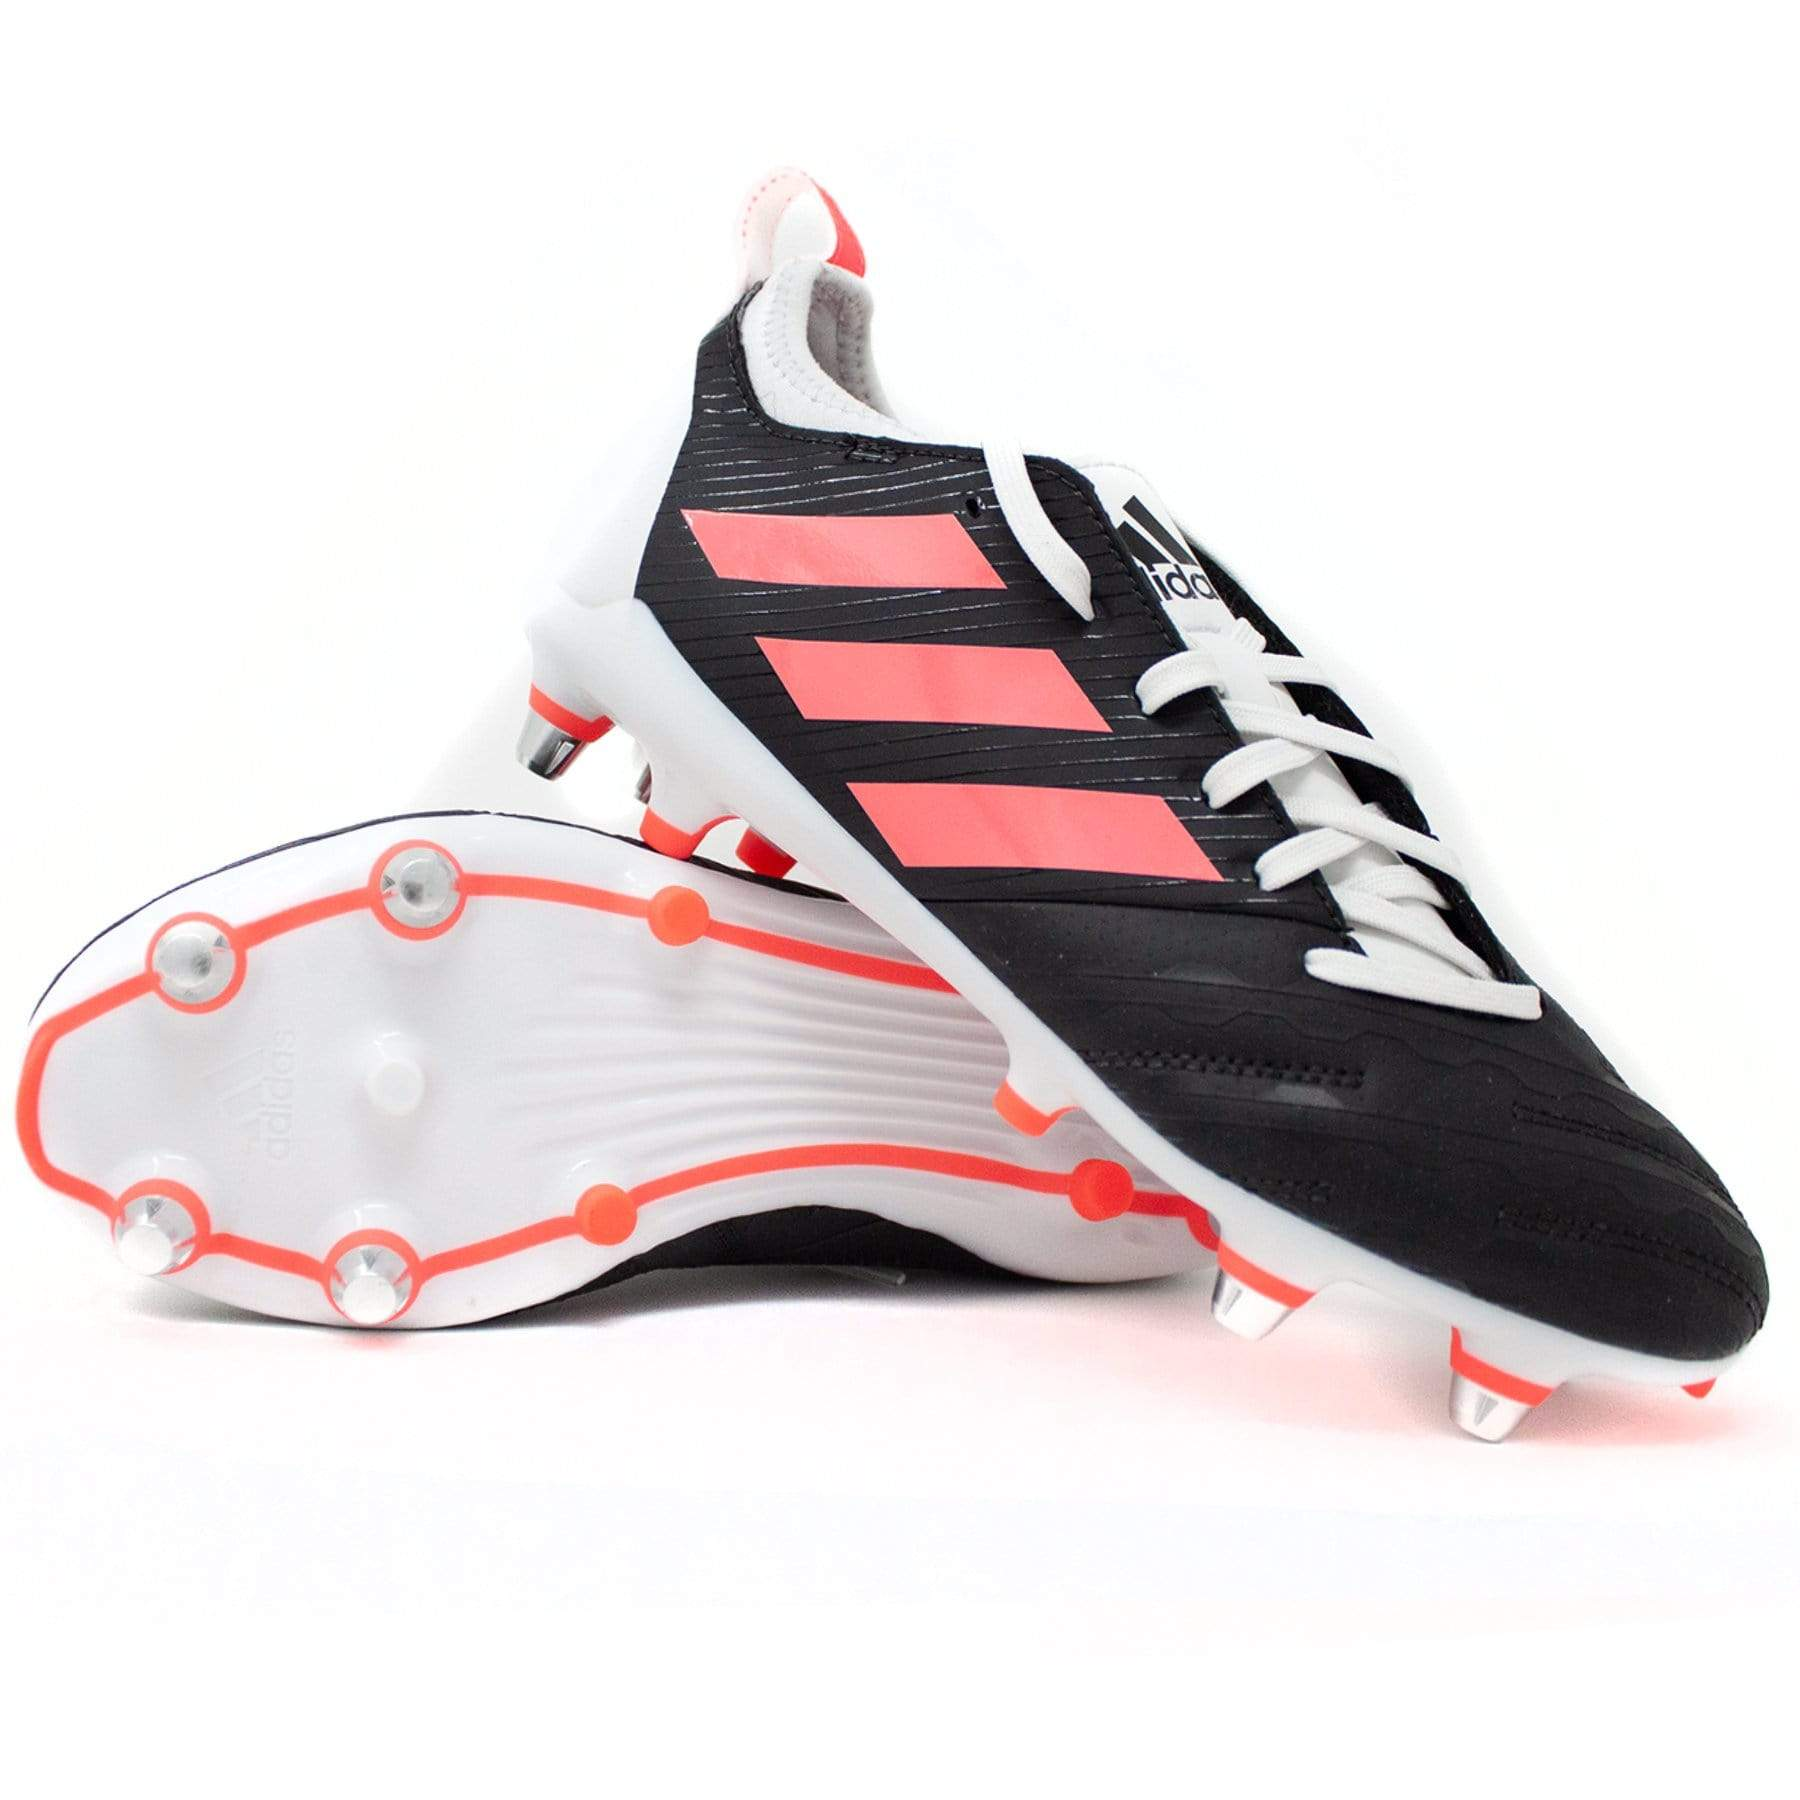 adidas FW20 Malice Elite SG Rugby Boots